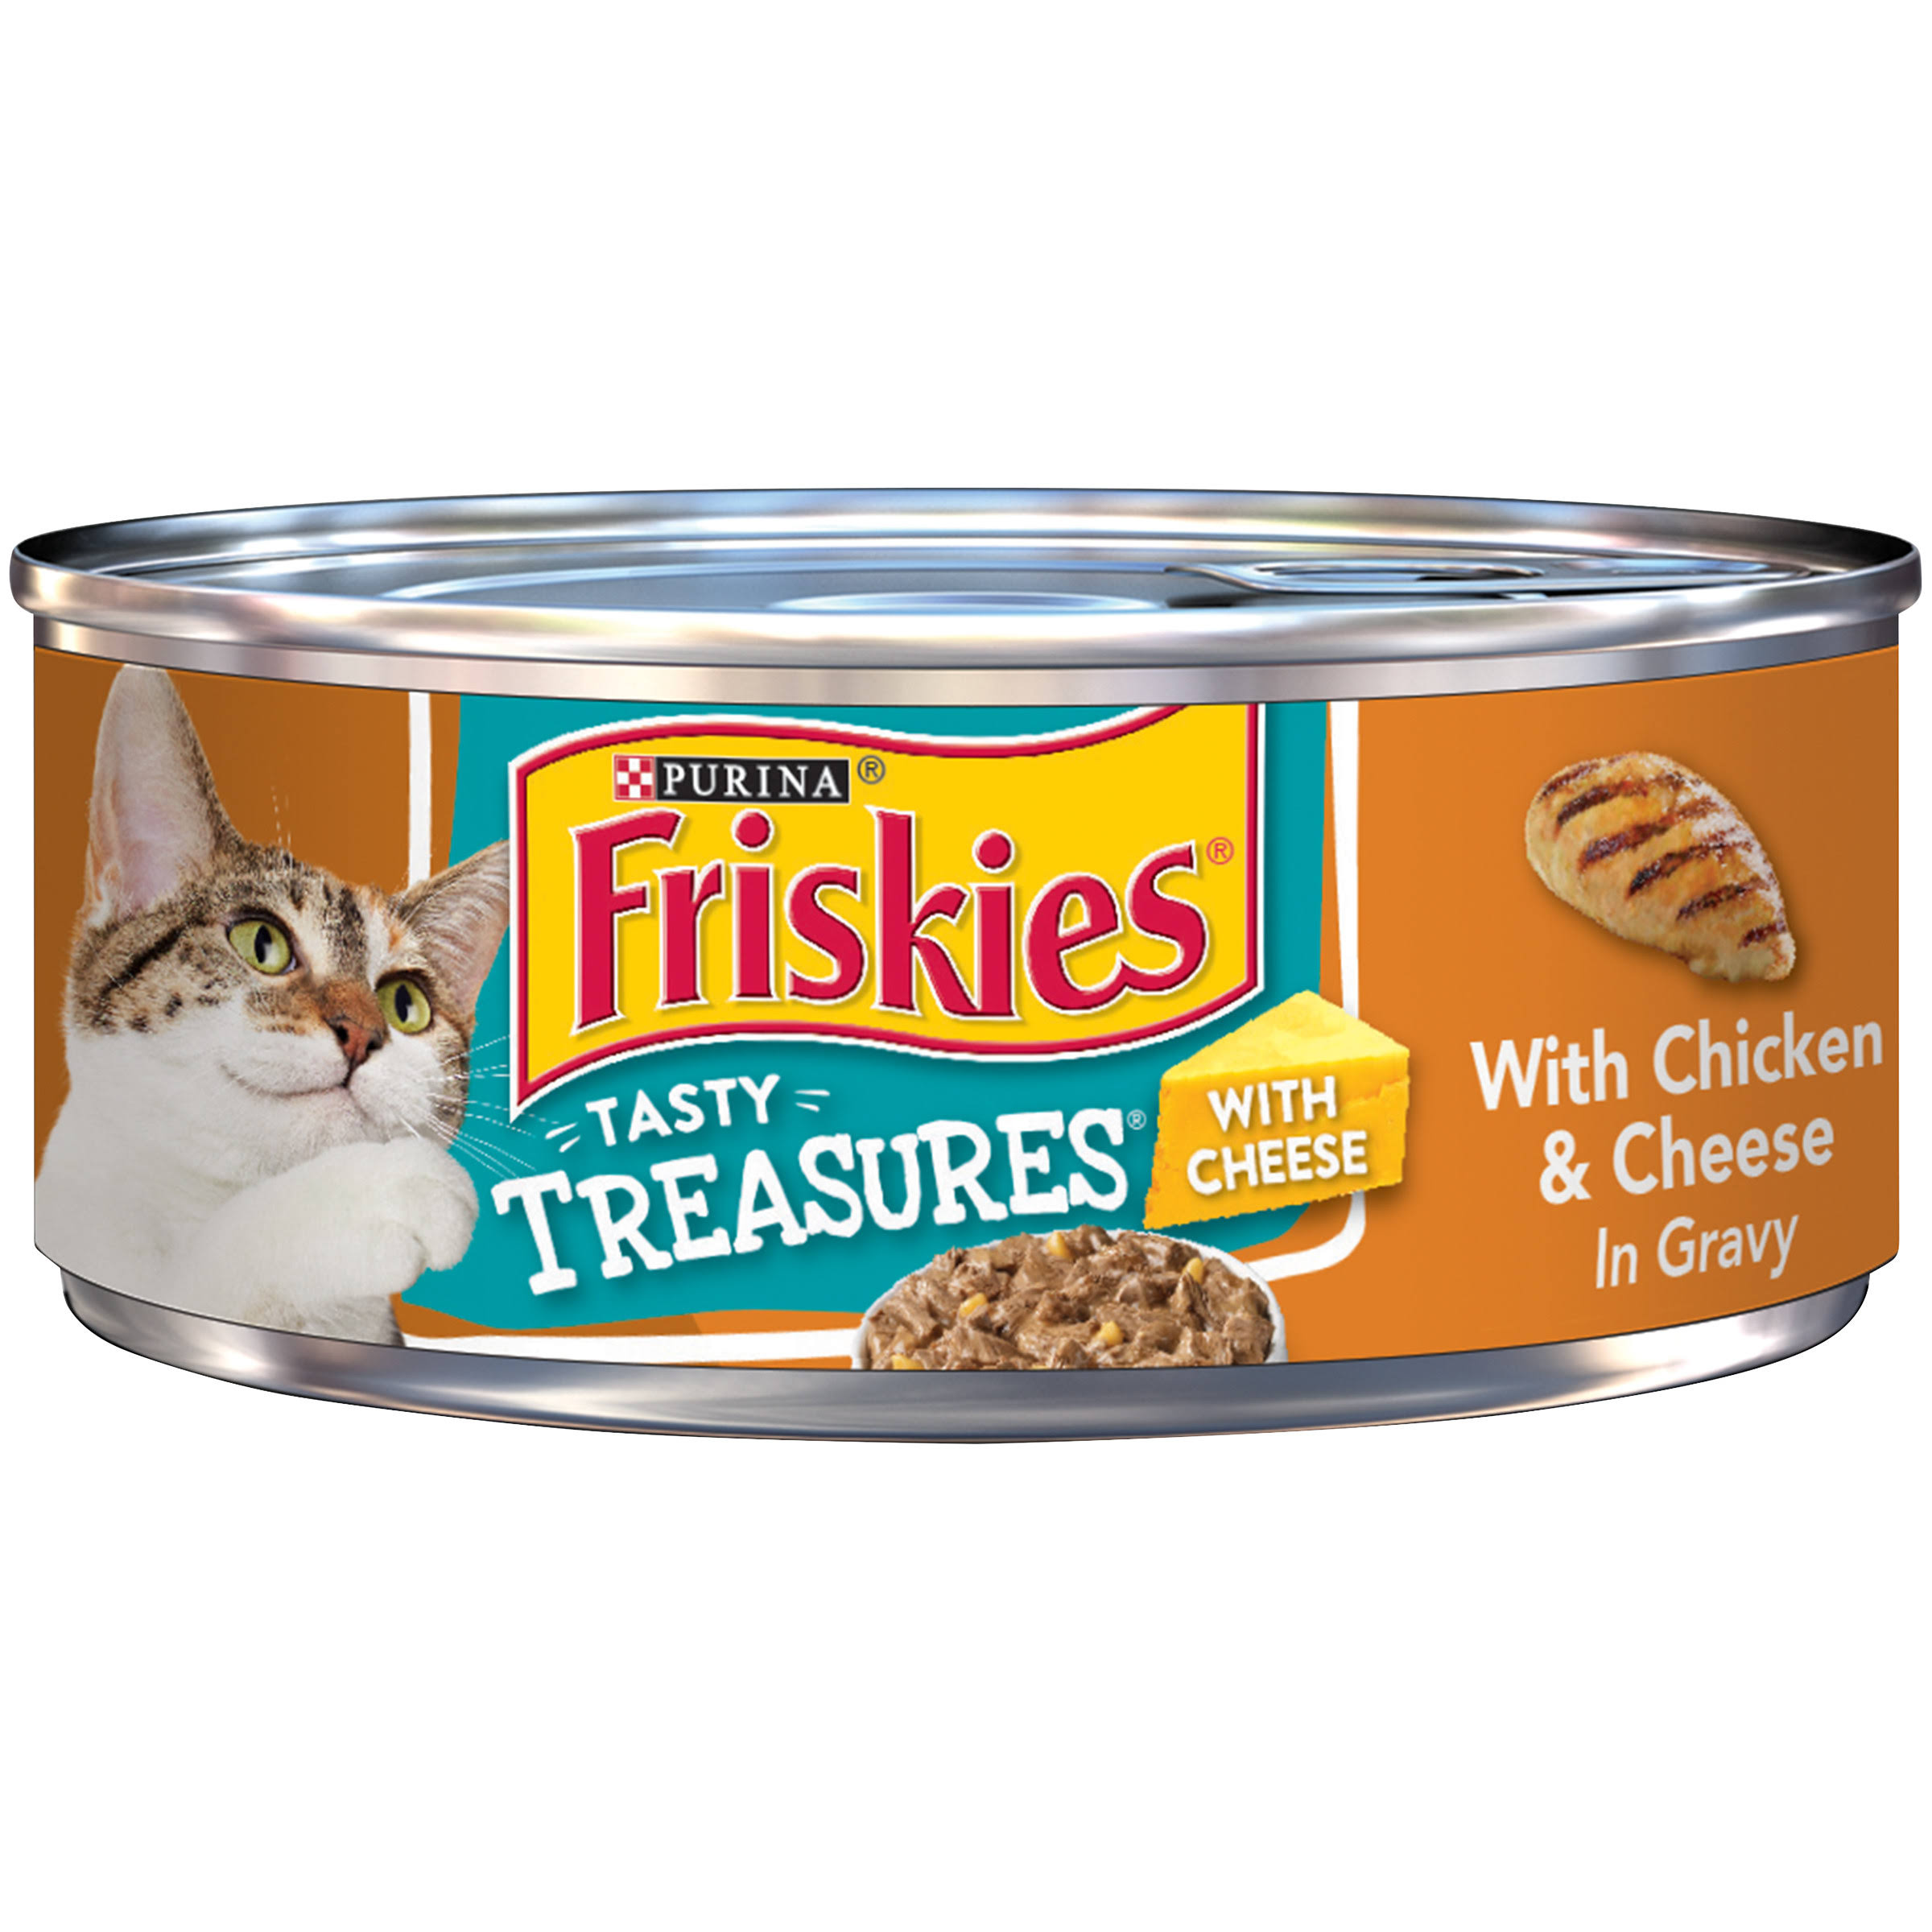 Purina Friskies Cat Food Tasty Treasures with Chicken & Cheese